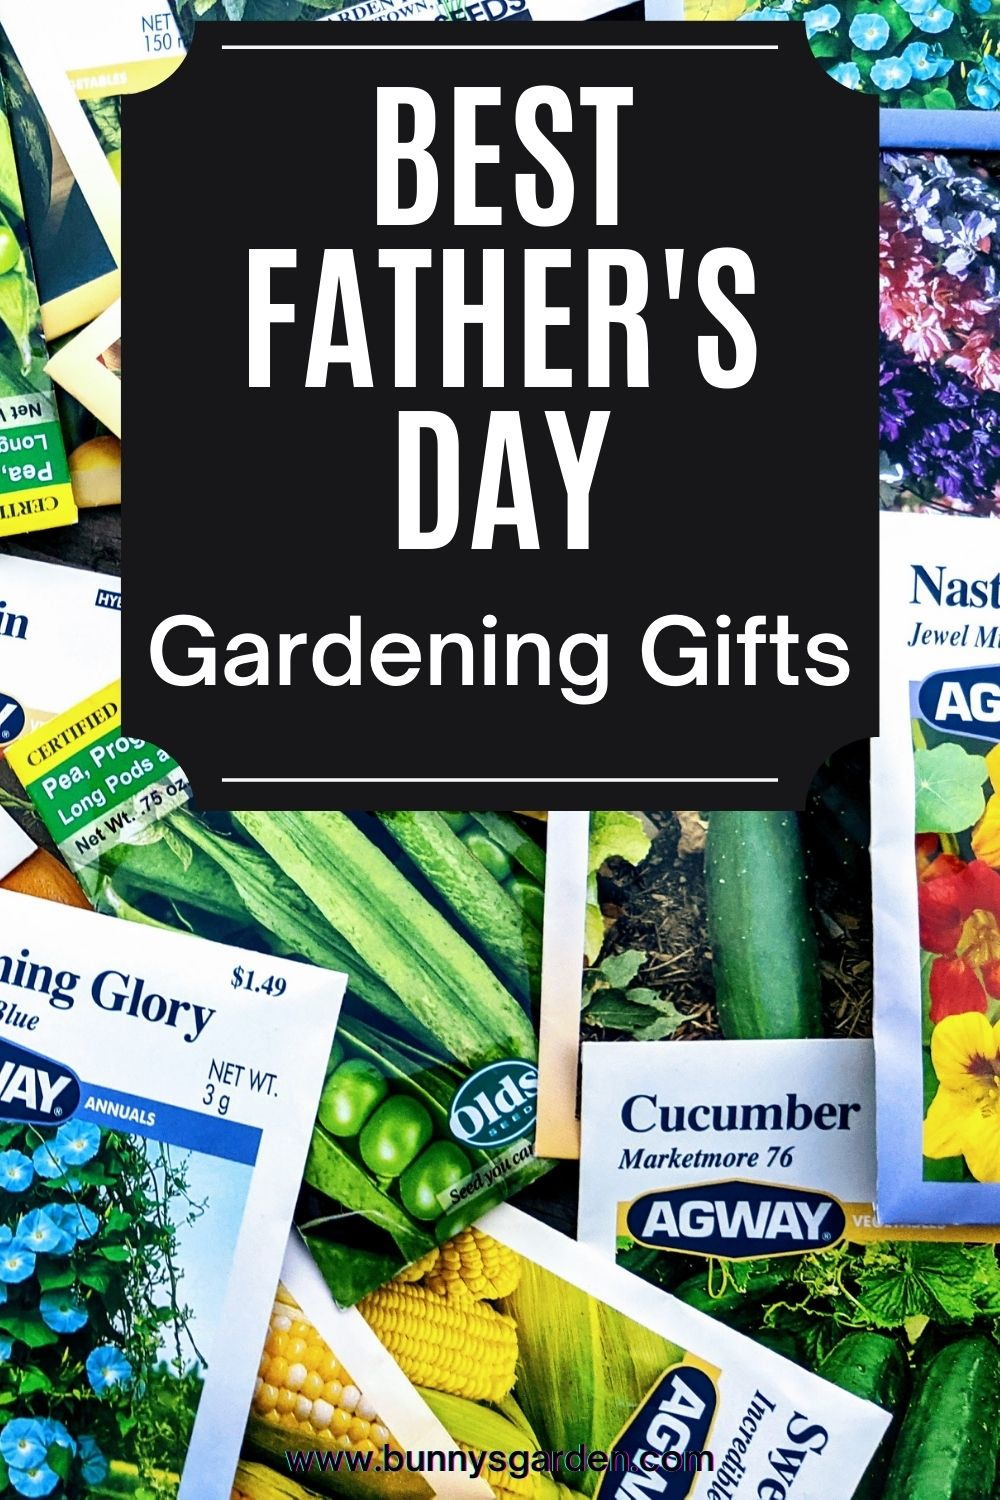 Best Father's Day Gardening Gifts - Seed packets background on pinterest image